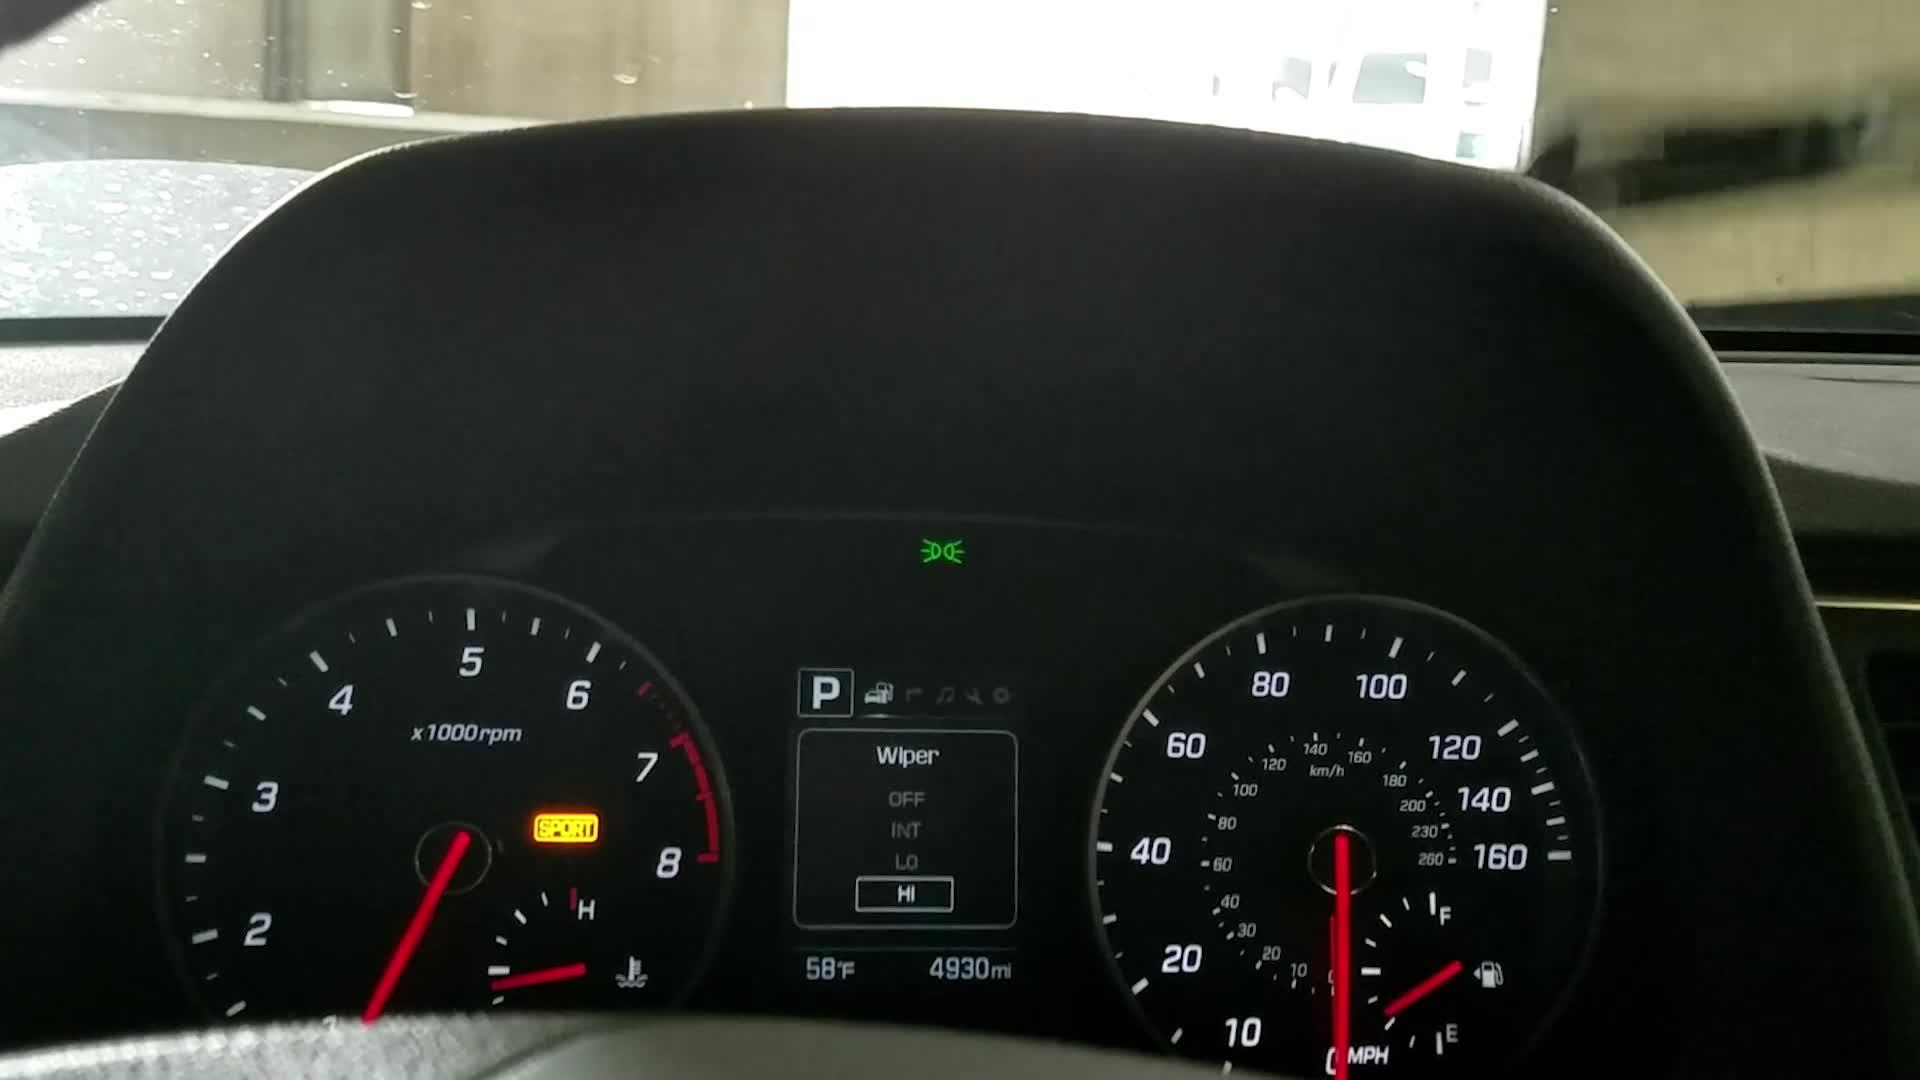 Hyundai Indicator Shows Wiper Position